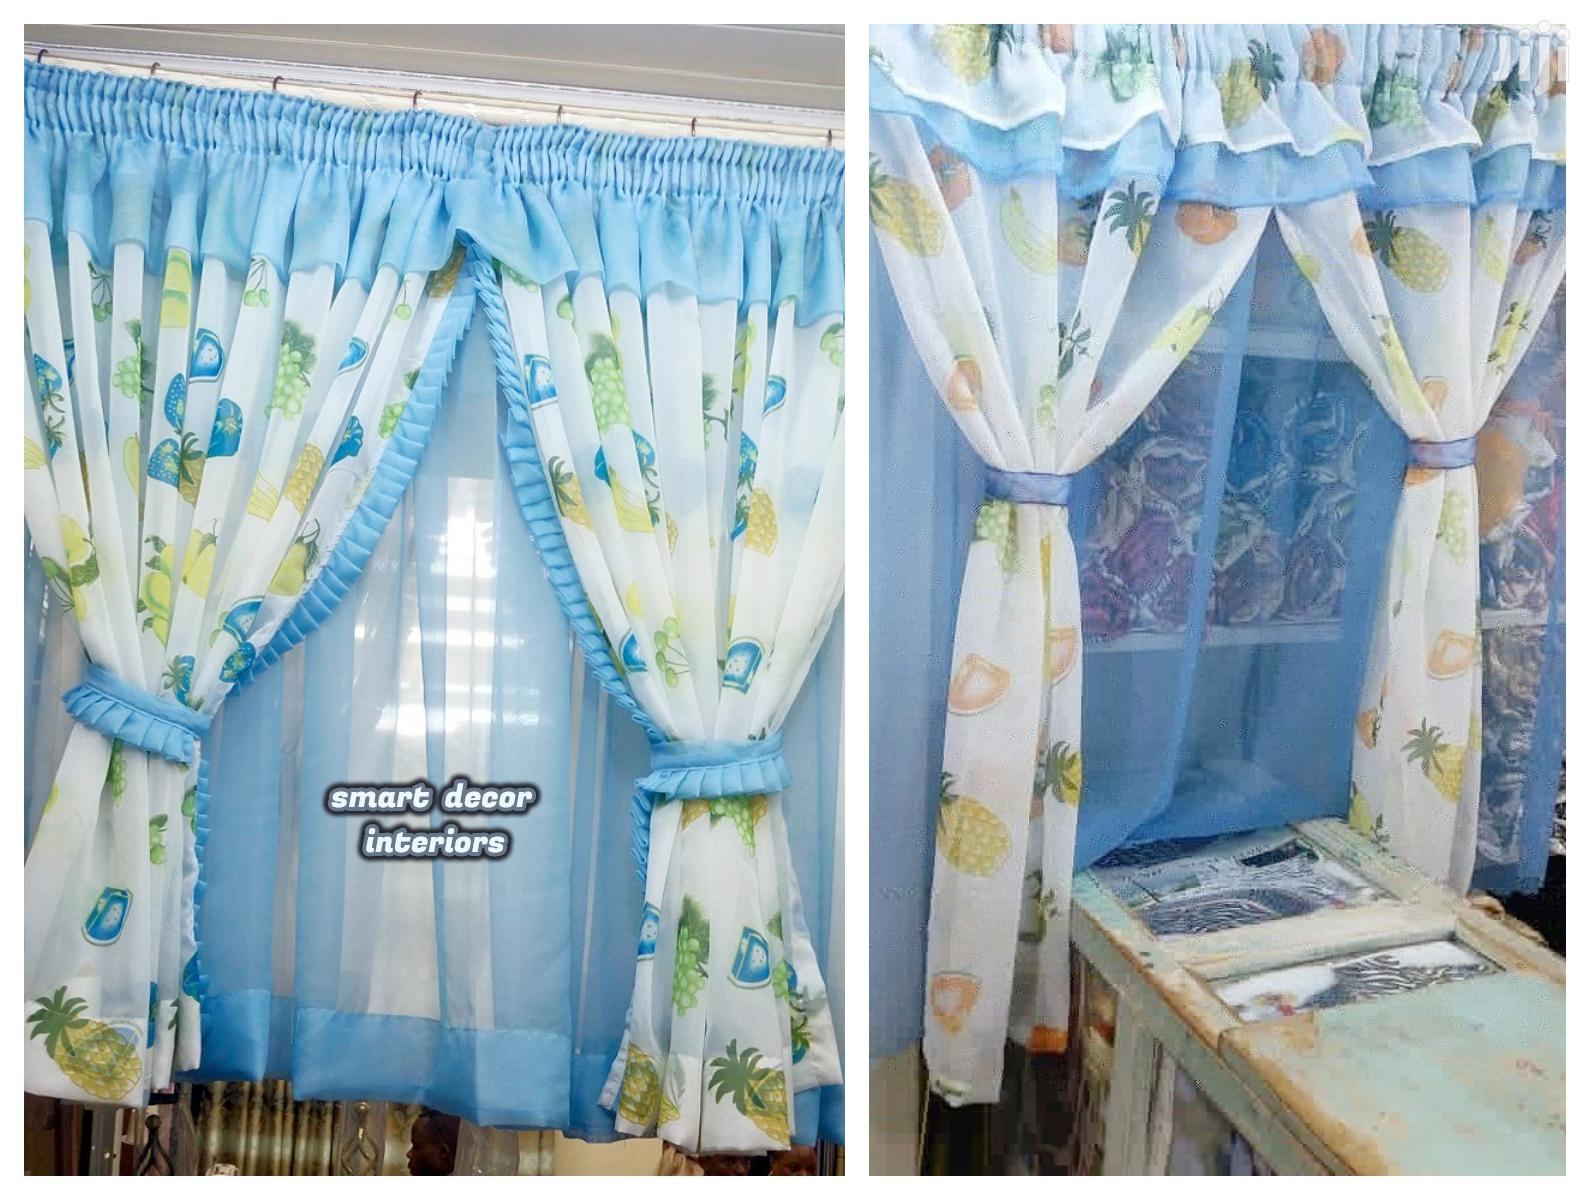 Kitchen Curtains In Nairobi Central Home Accessories Smart Decor Interiors Jiji Co Ke For Sale In Nairobi Central Buy Home Accessories From Smart Decor Interiors On Jiji Co Ke